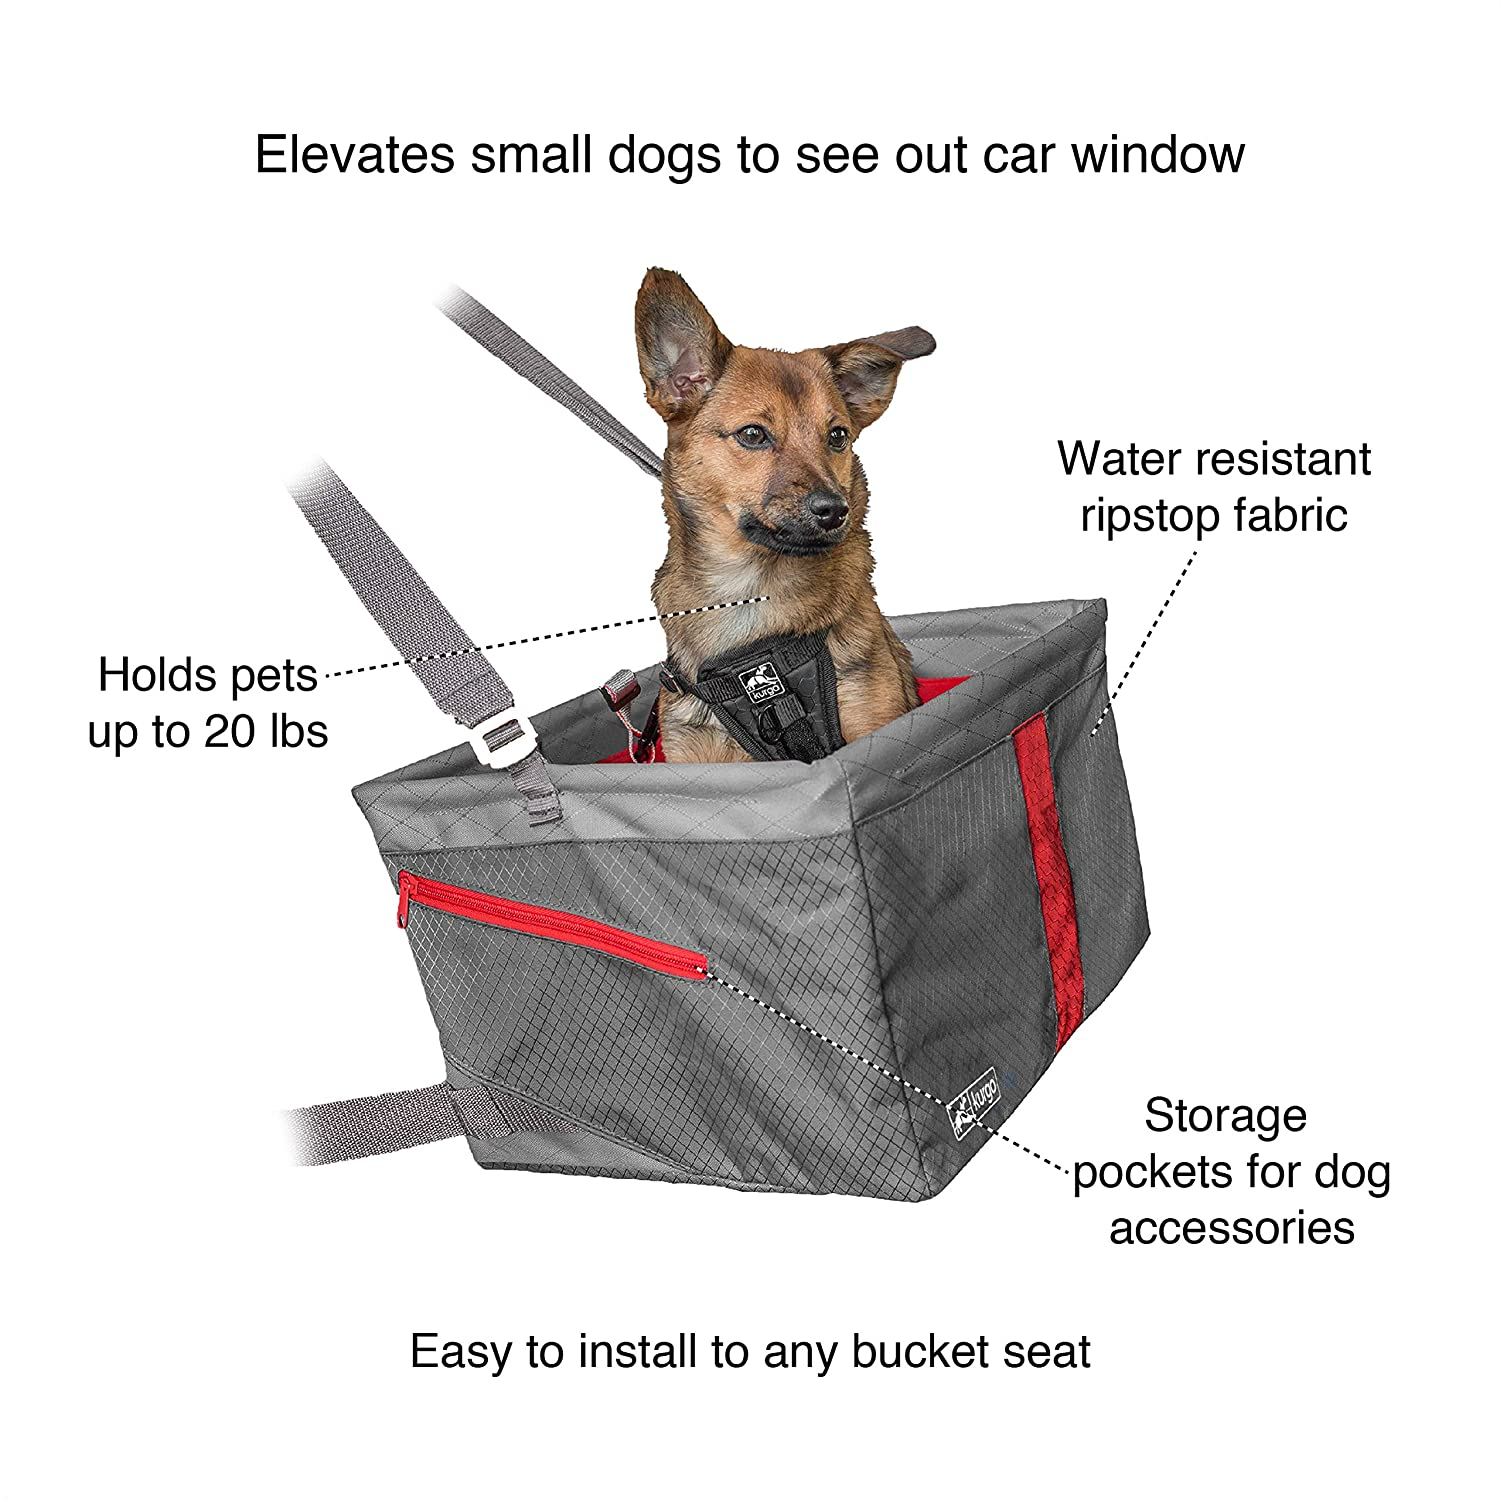 Helps with Canine Car Sickness Front /& Rear Dog Car Seat | Dog Seatbelt Tether Kurgo Car Pet Booster Seat for Dogs or Cats Carrier Carseat for Pets